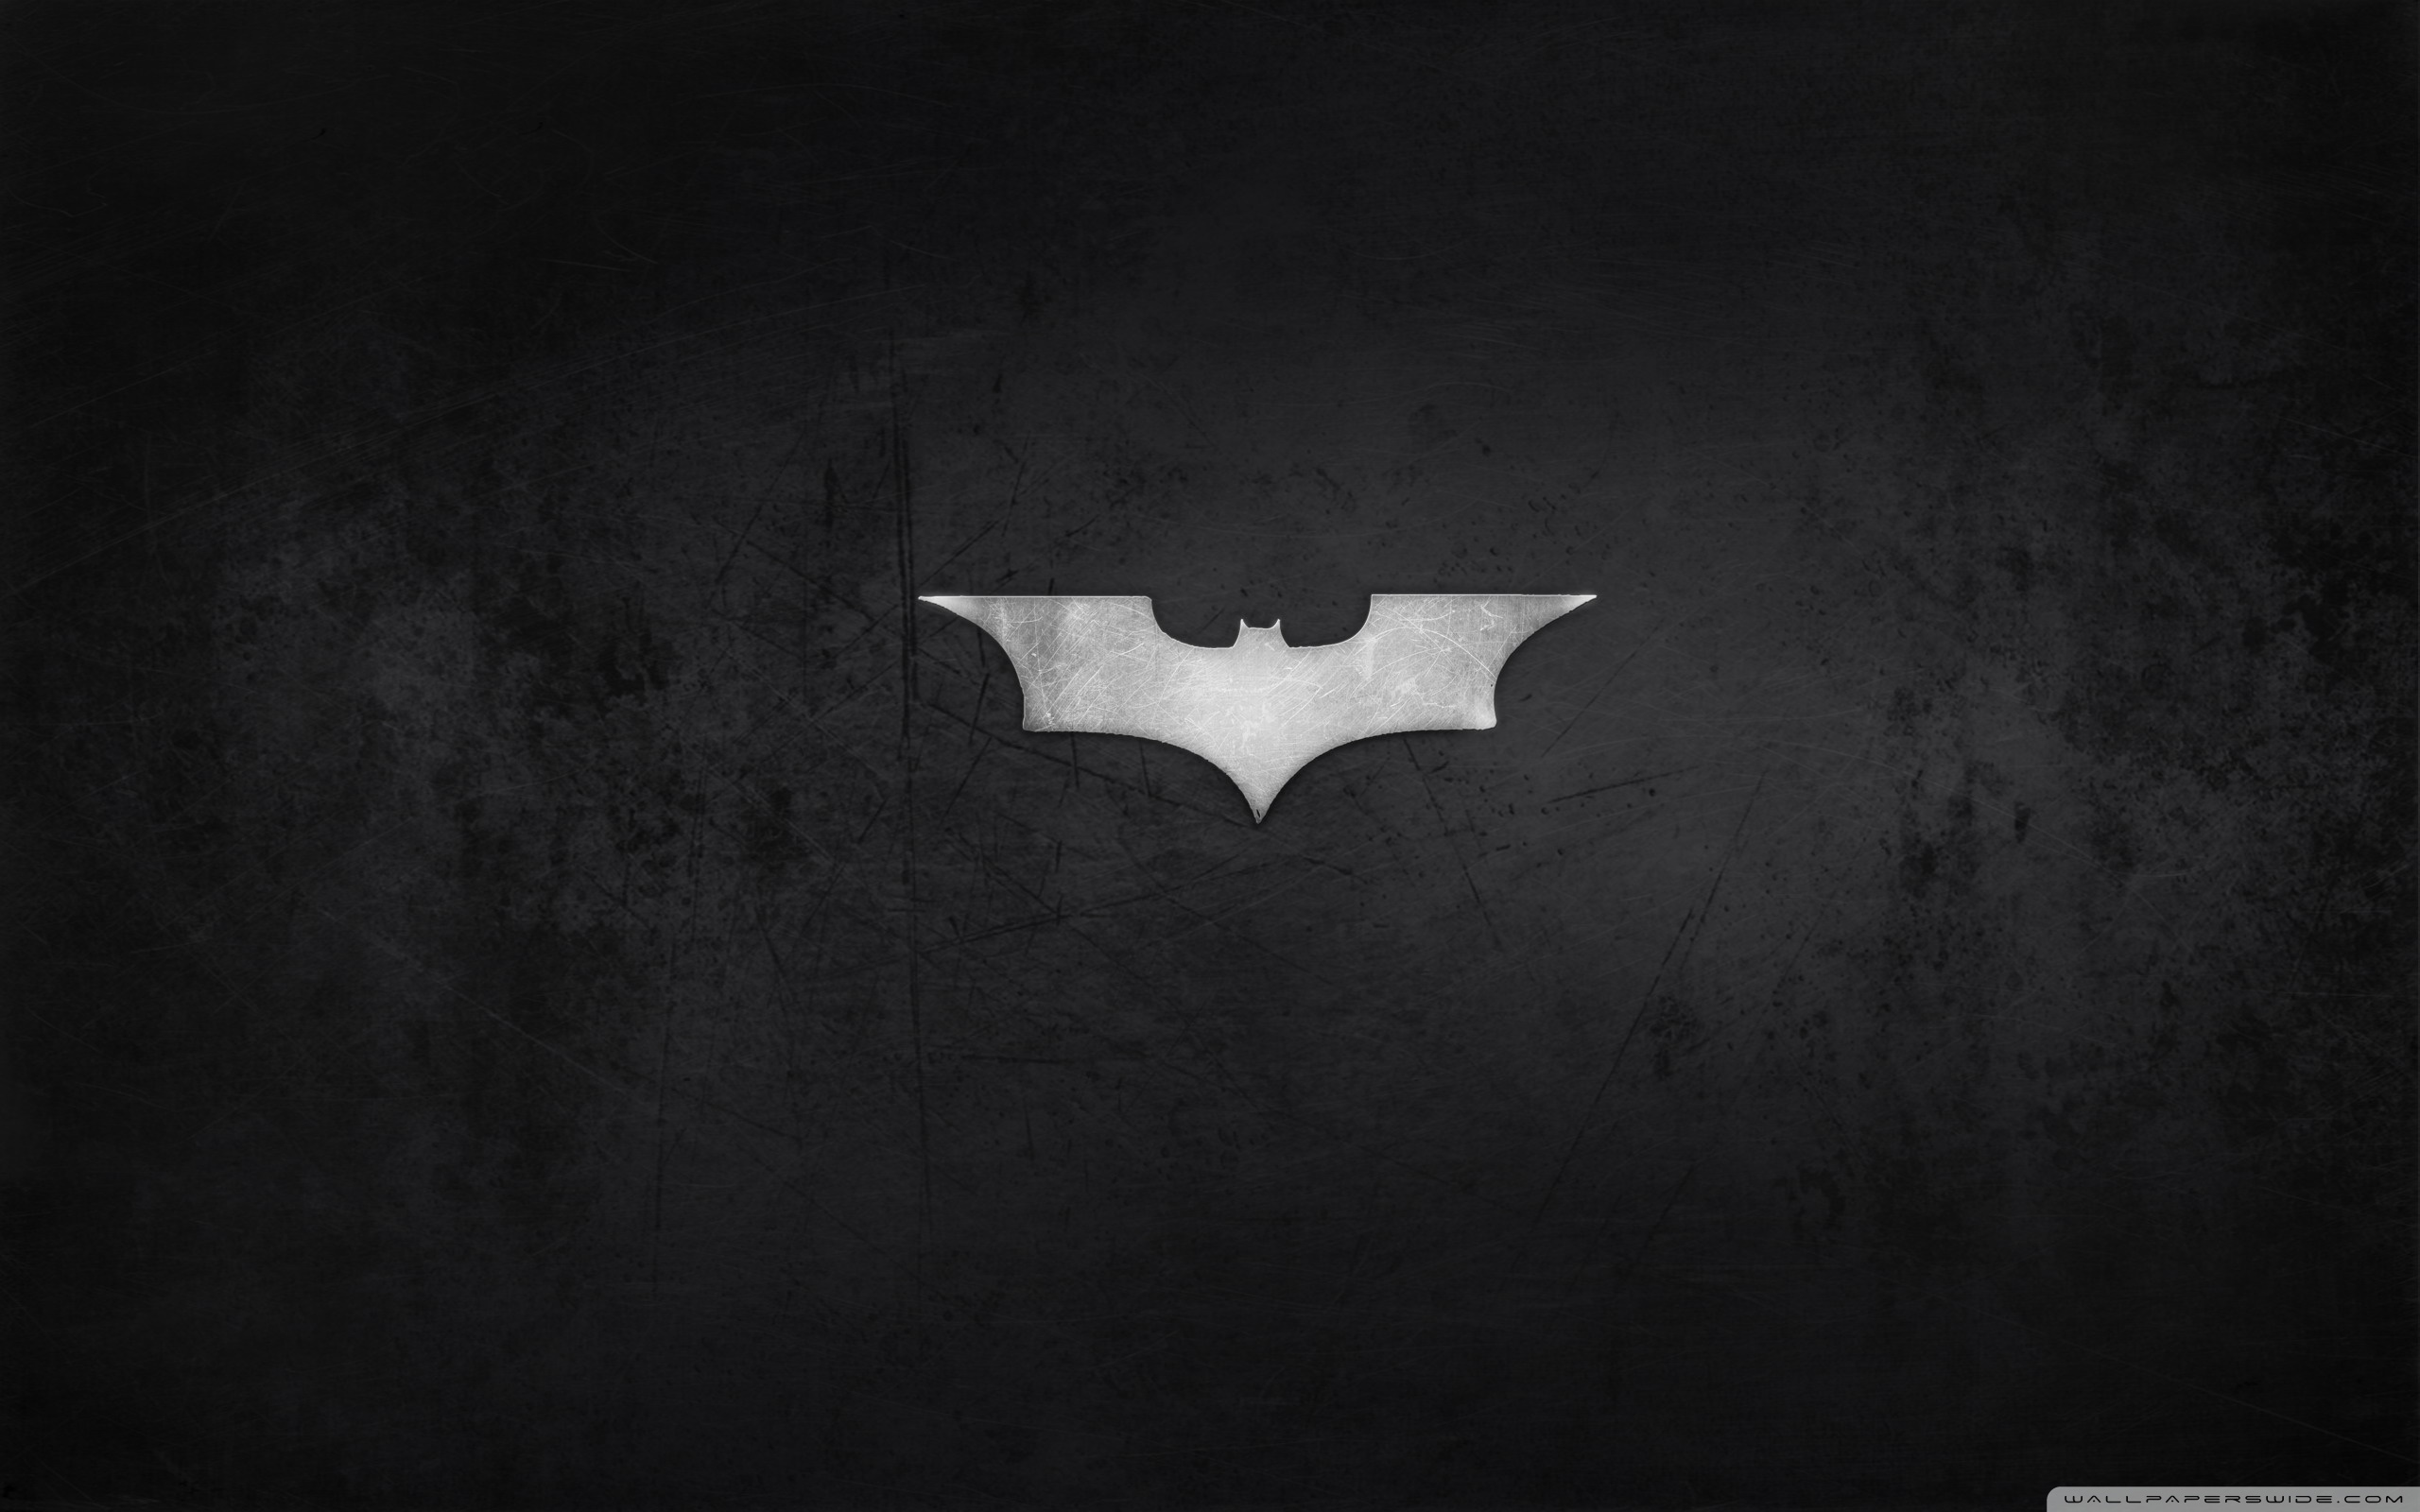 Batman Hd Wallpapers For Mobile